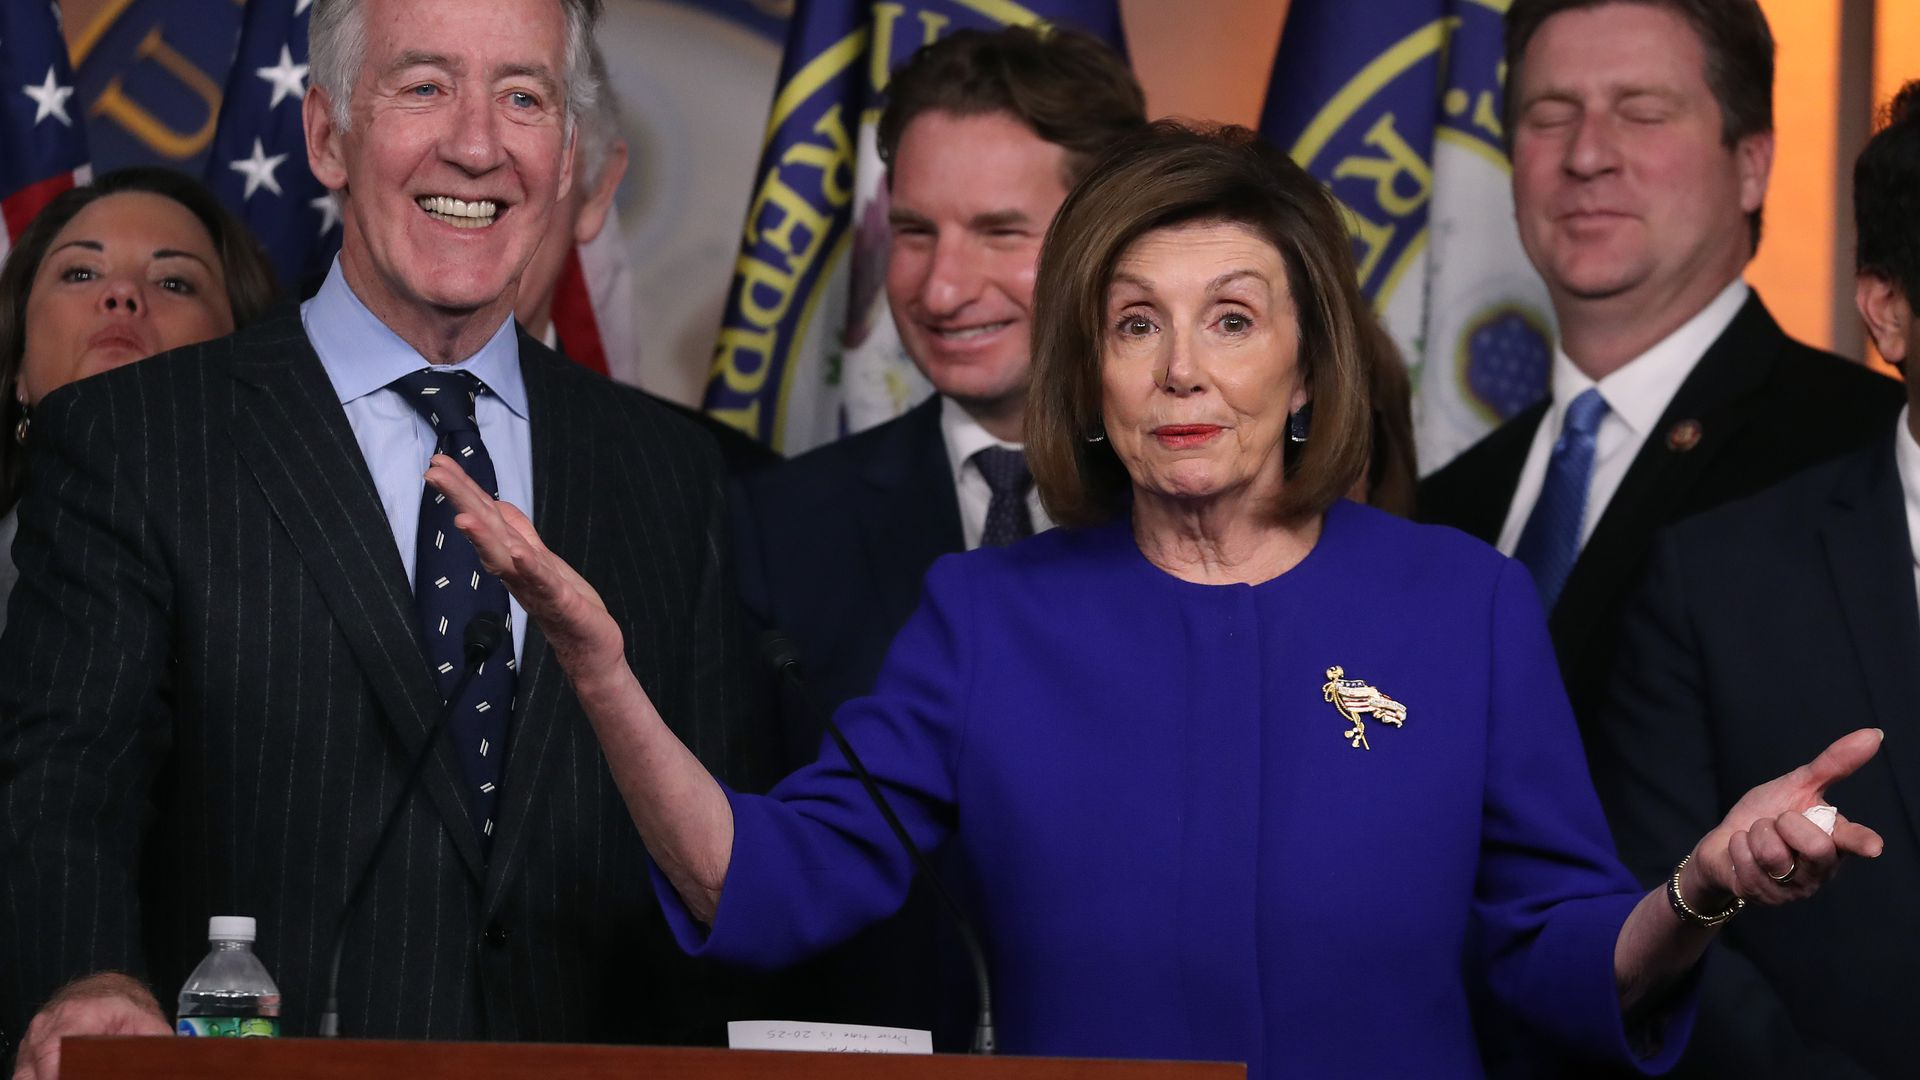 Nancy pelosi with her arms out